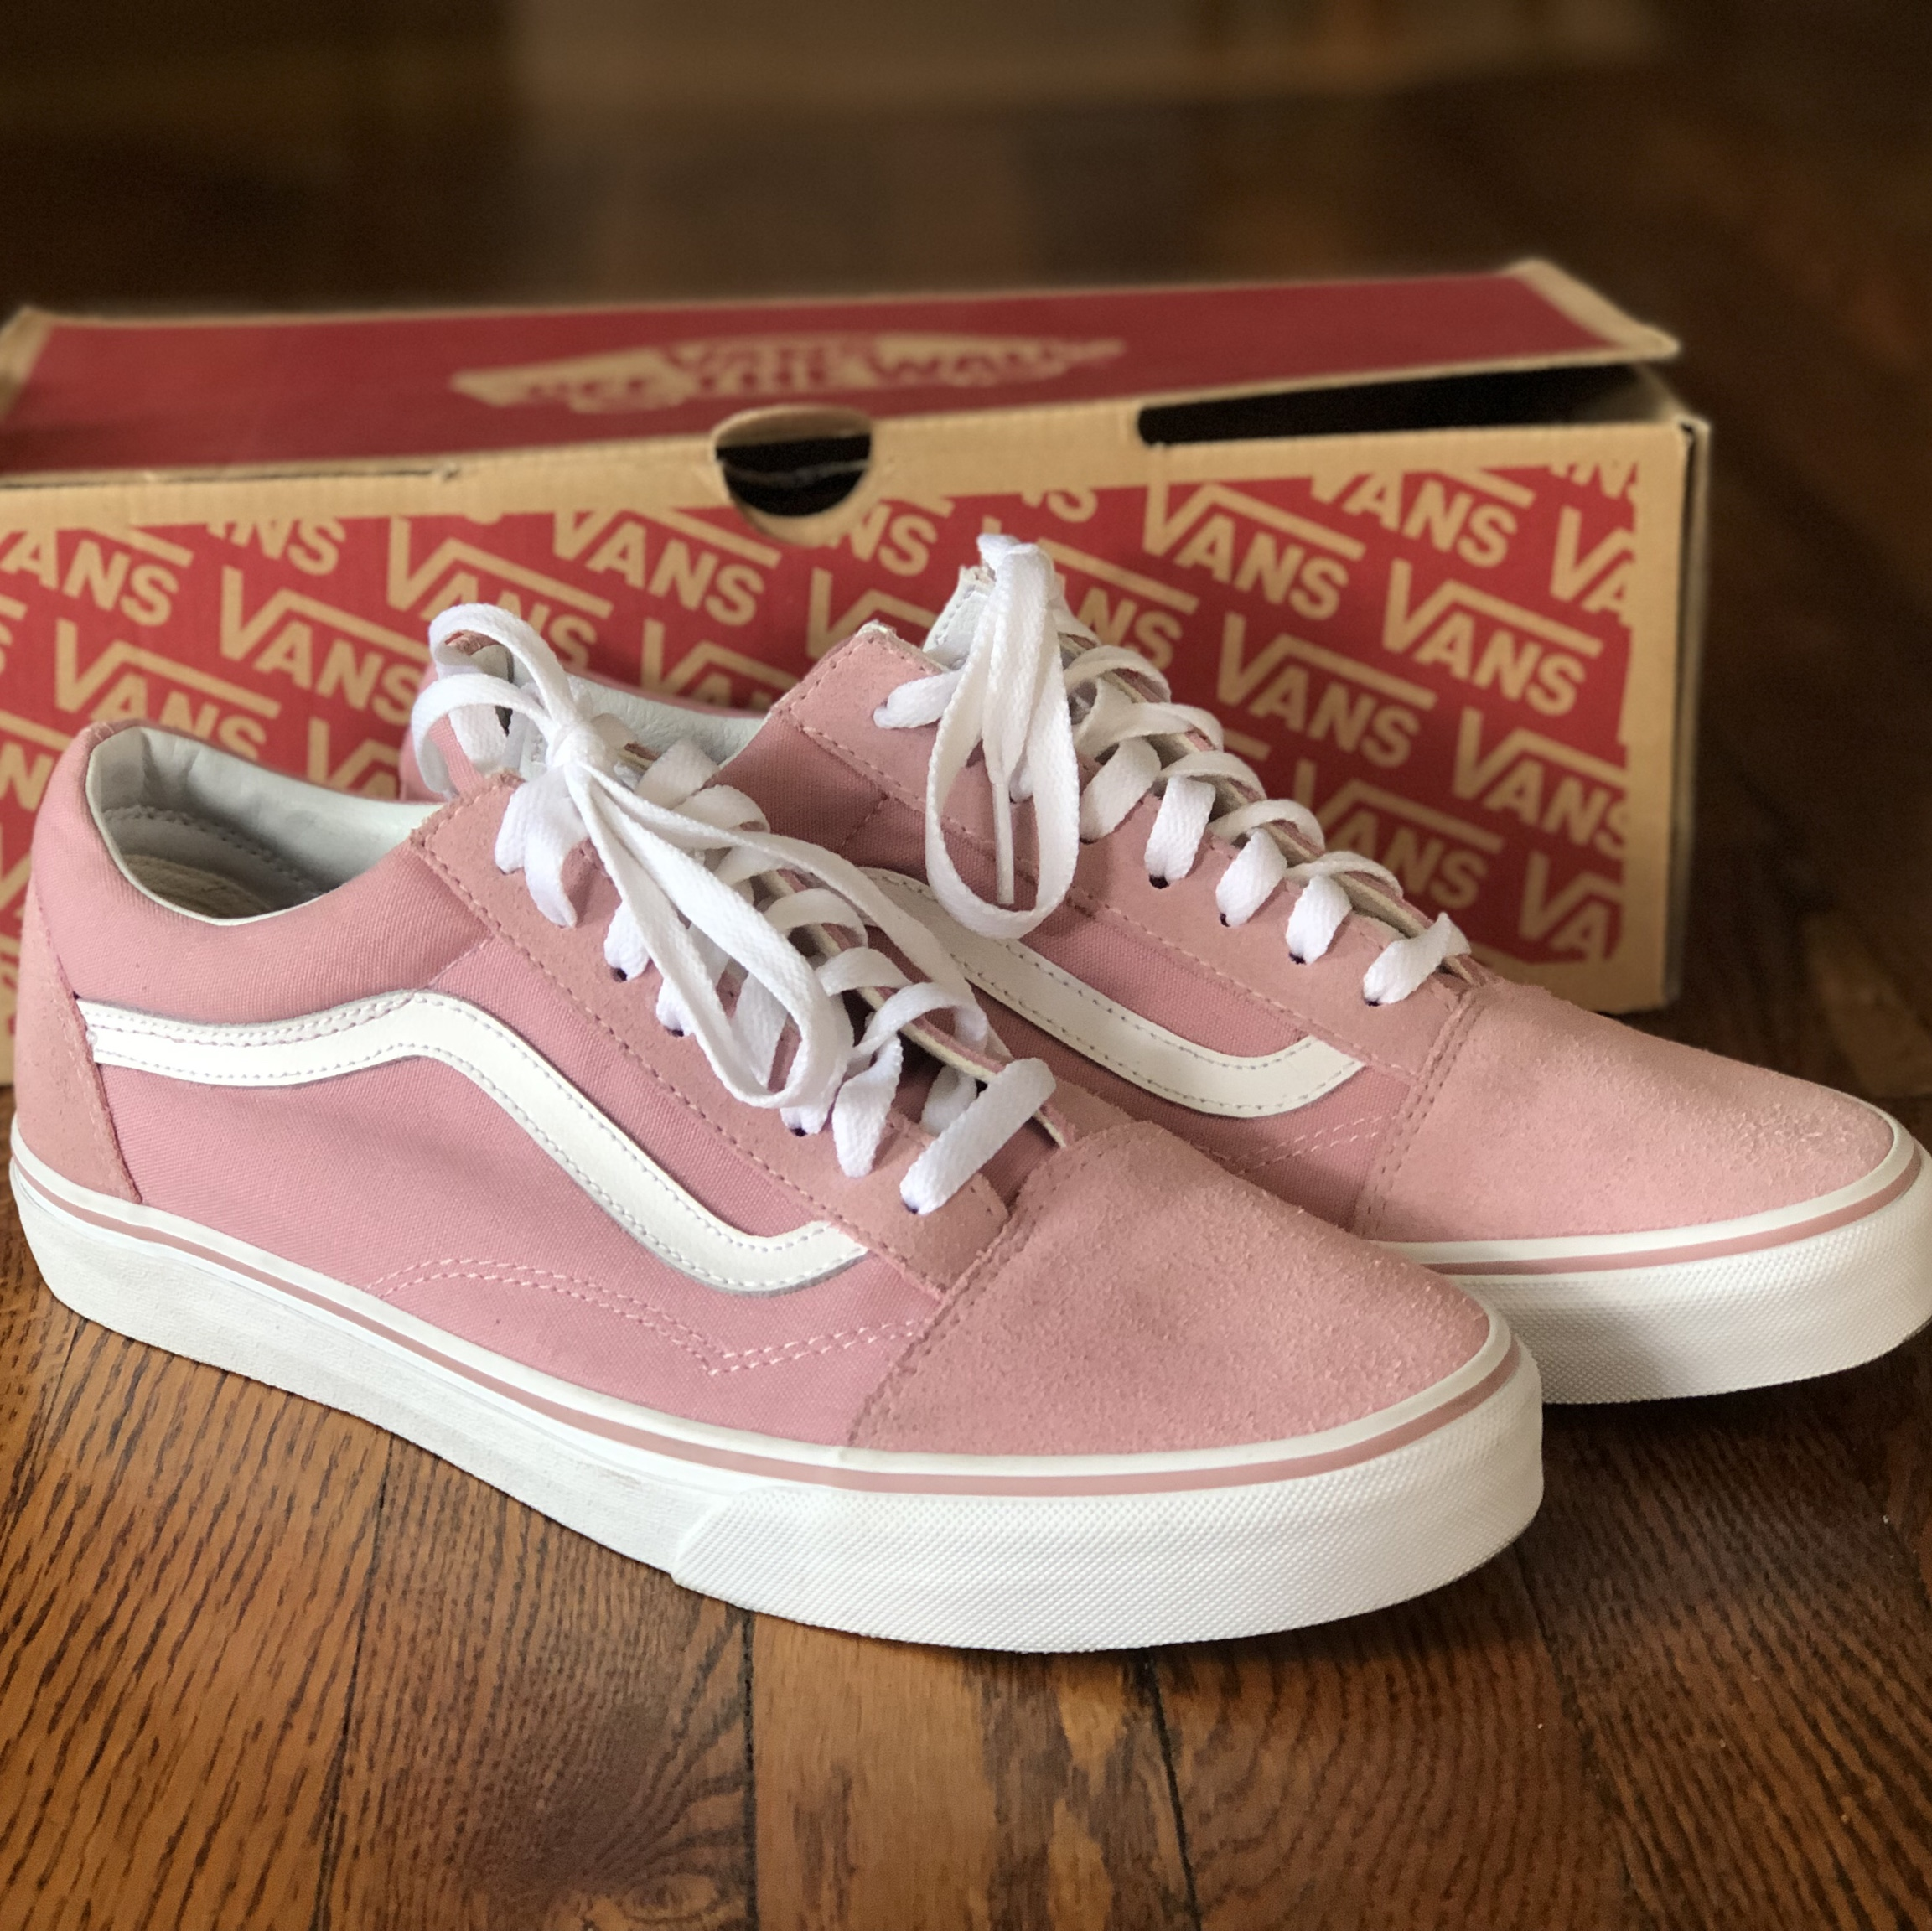 6b9908219f Pink/Zephyr and white Vans Old Skools. Men's 10.5... - Depop